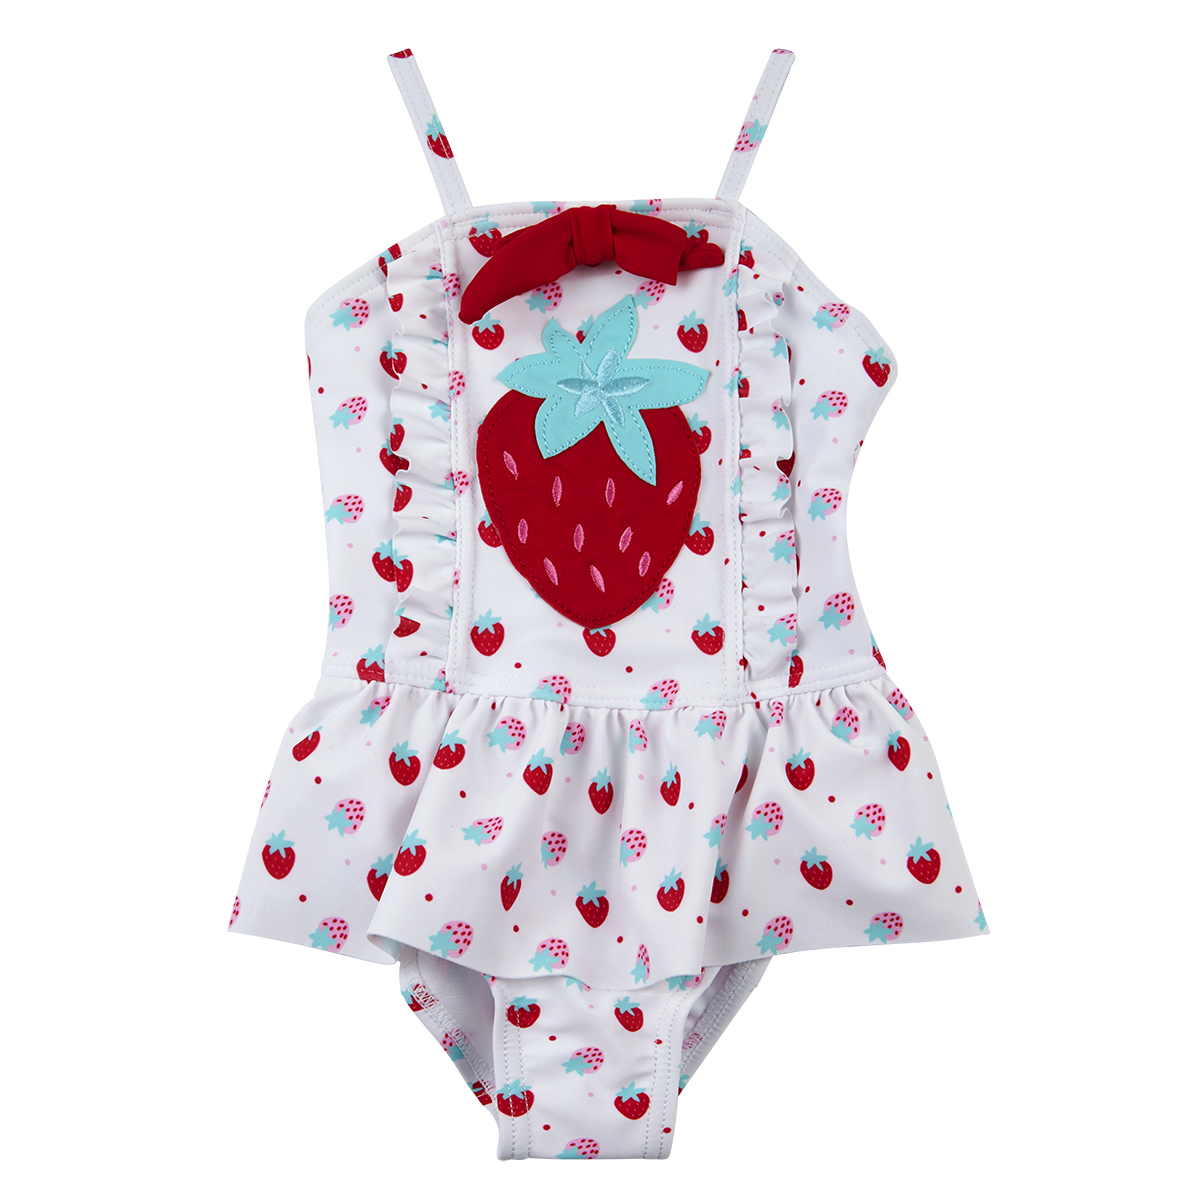 Baby Girls Novelty Character Swimming Costume Dress Size  3-24 months